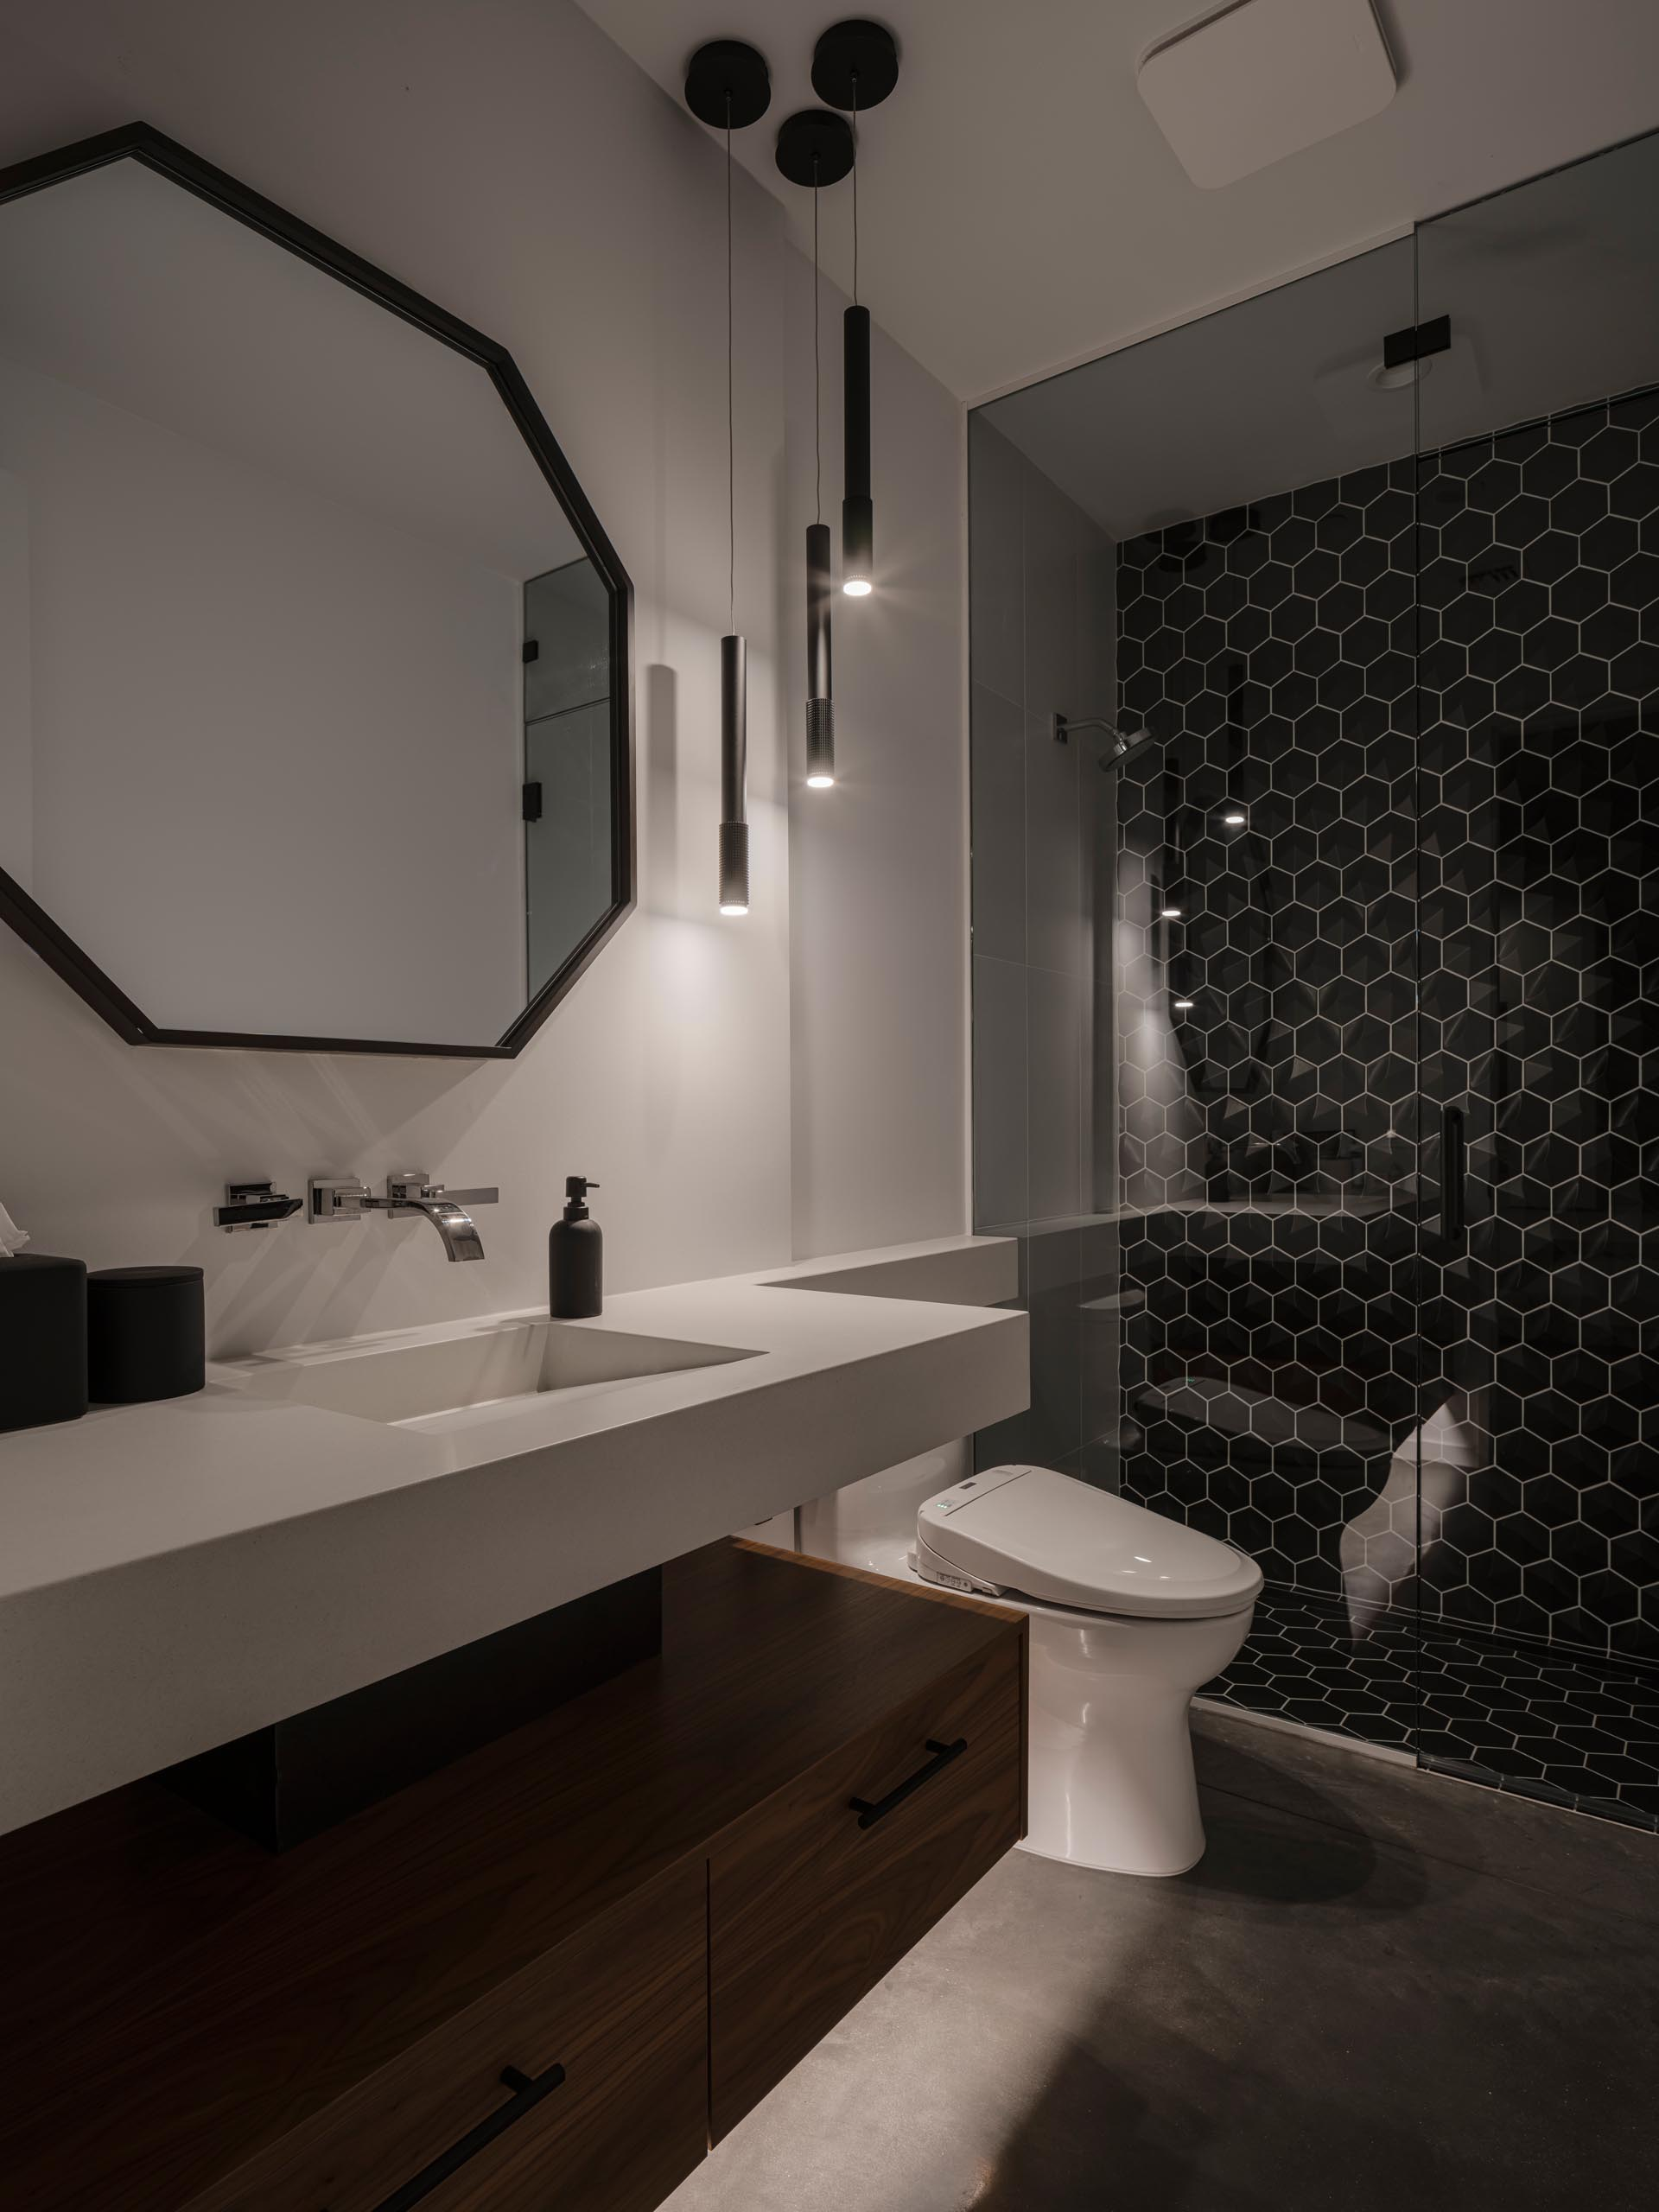 In this modern guest bathroom there's a floating vanity with wood cabinet underneath, and a large black framed octagonal mirror that complements the black hexagonal tiles in the shower.